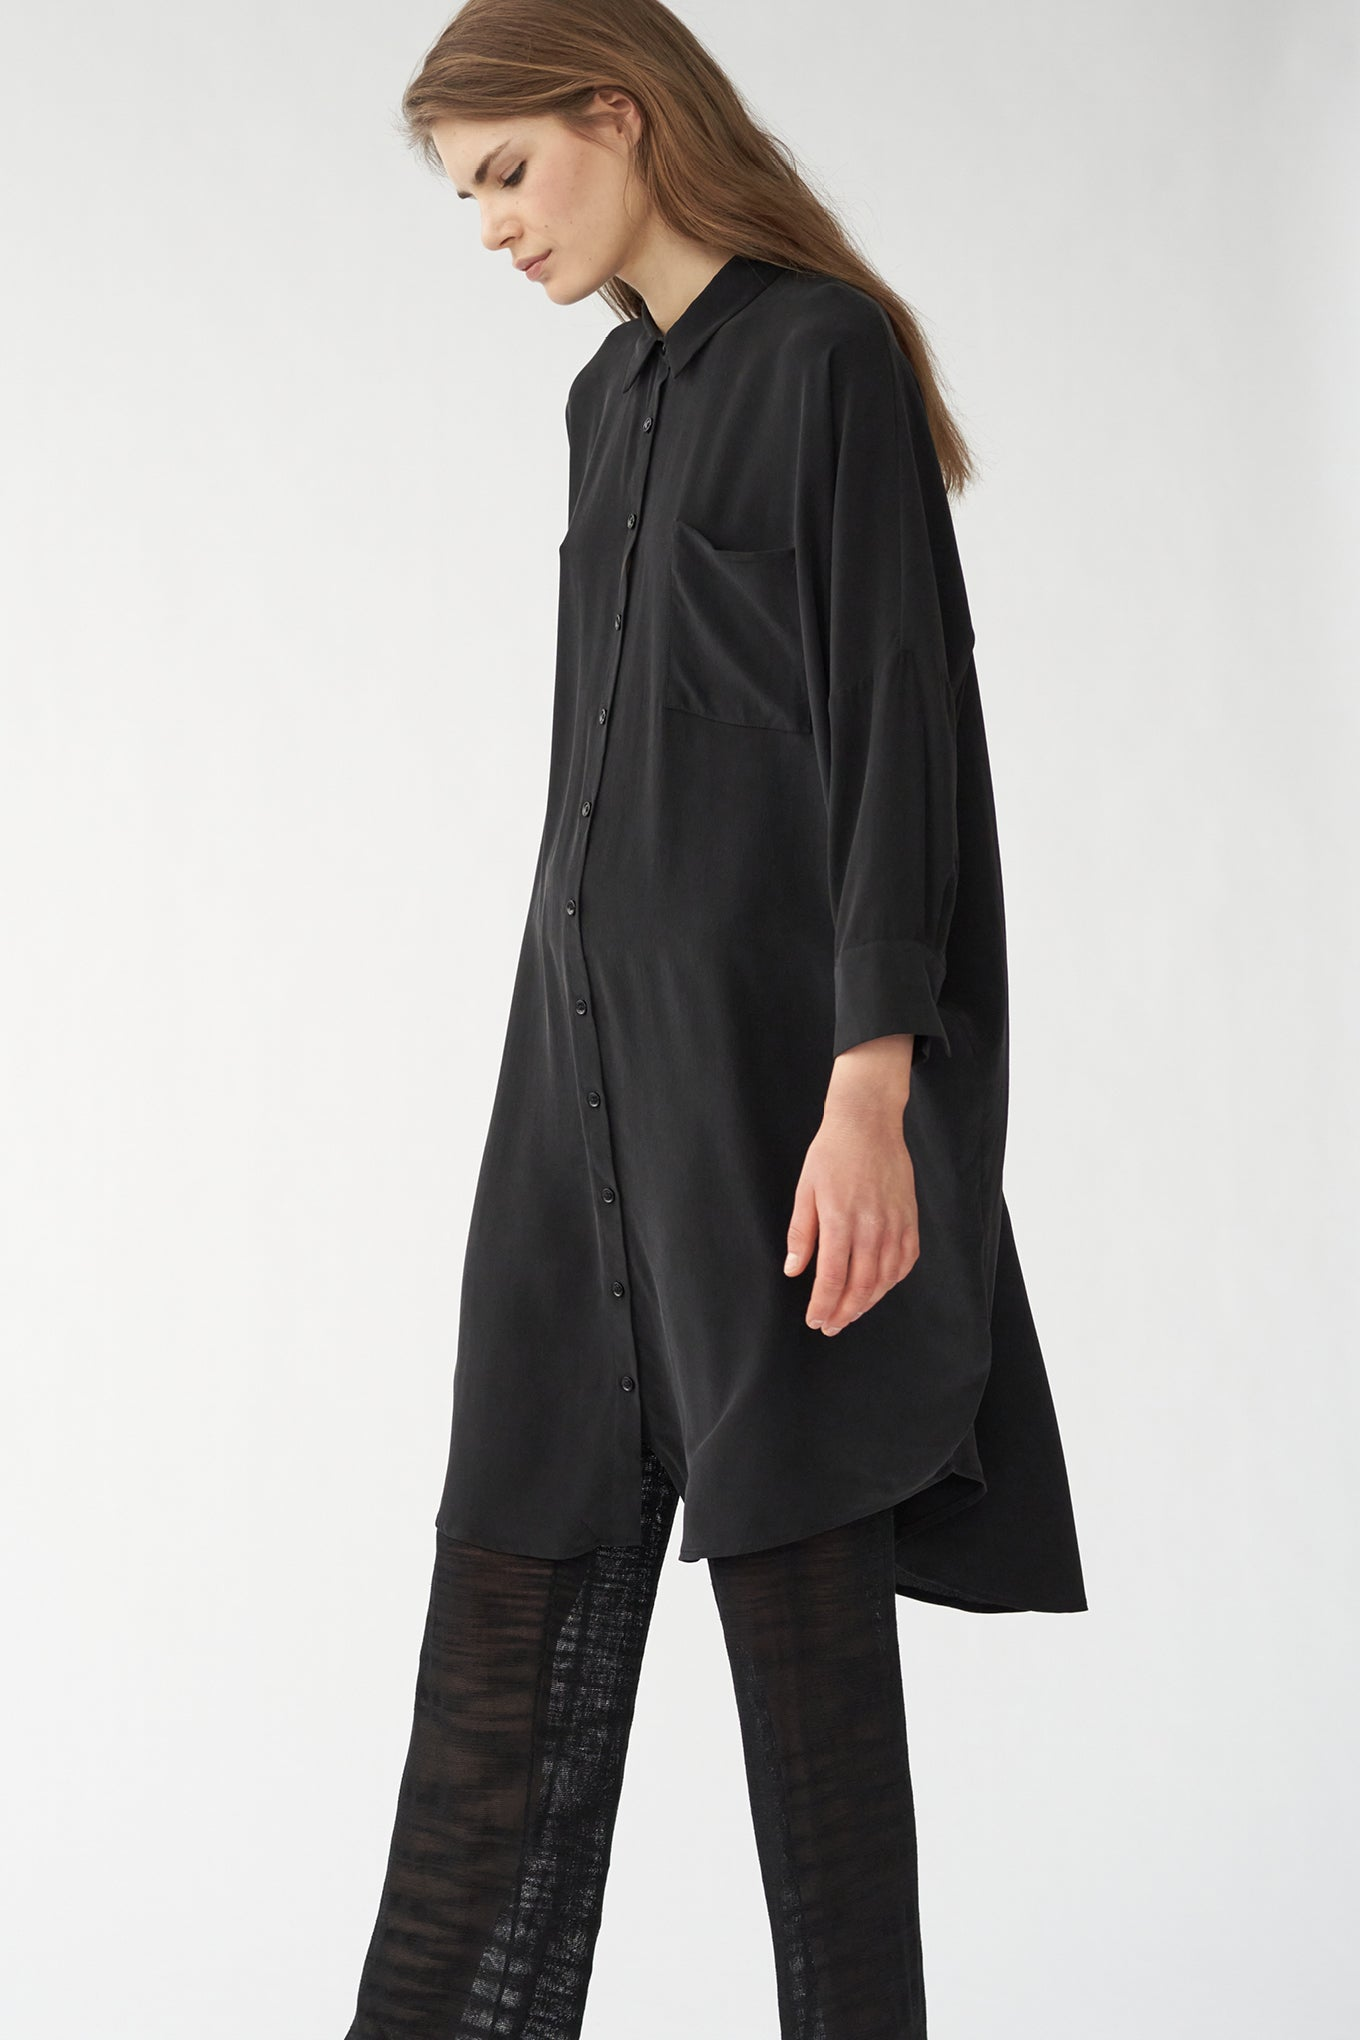 OVERSIZE SHIRT DRESS - BLACK